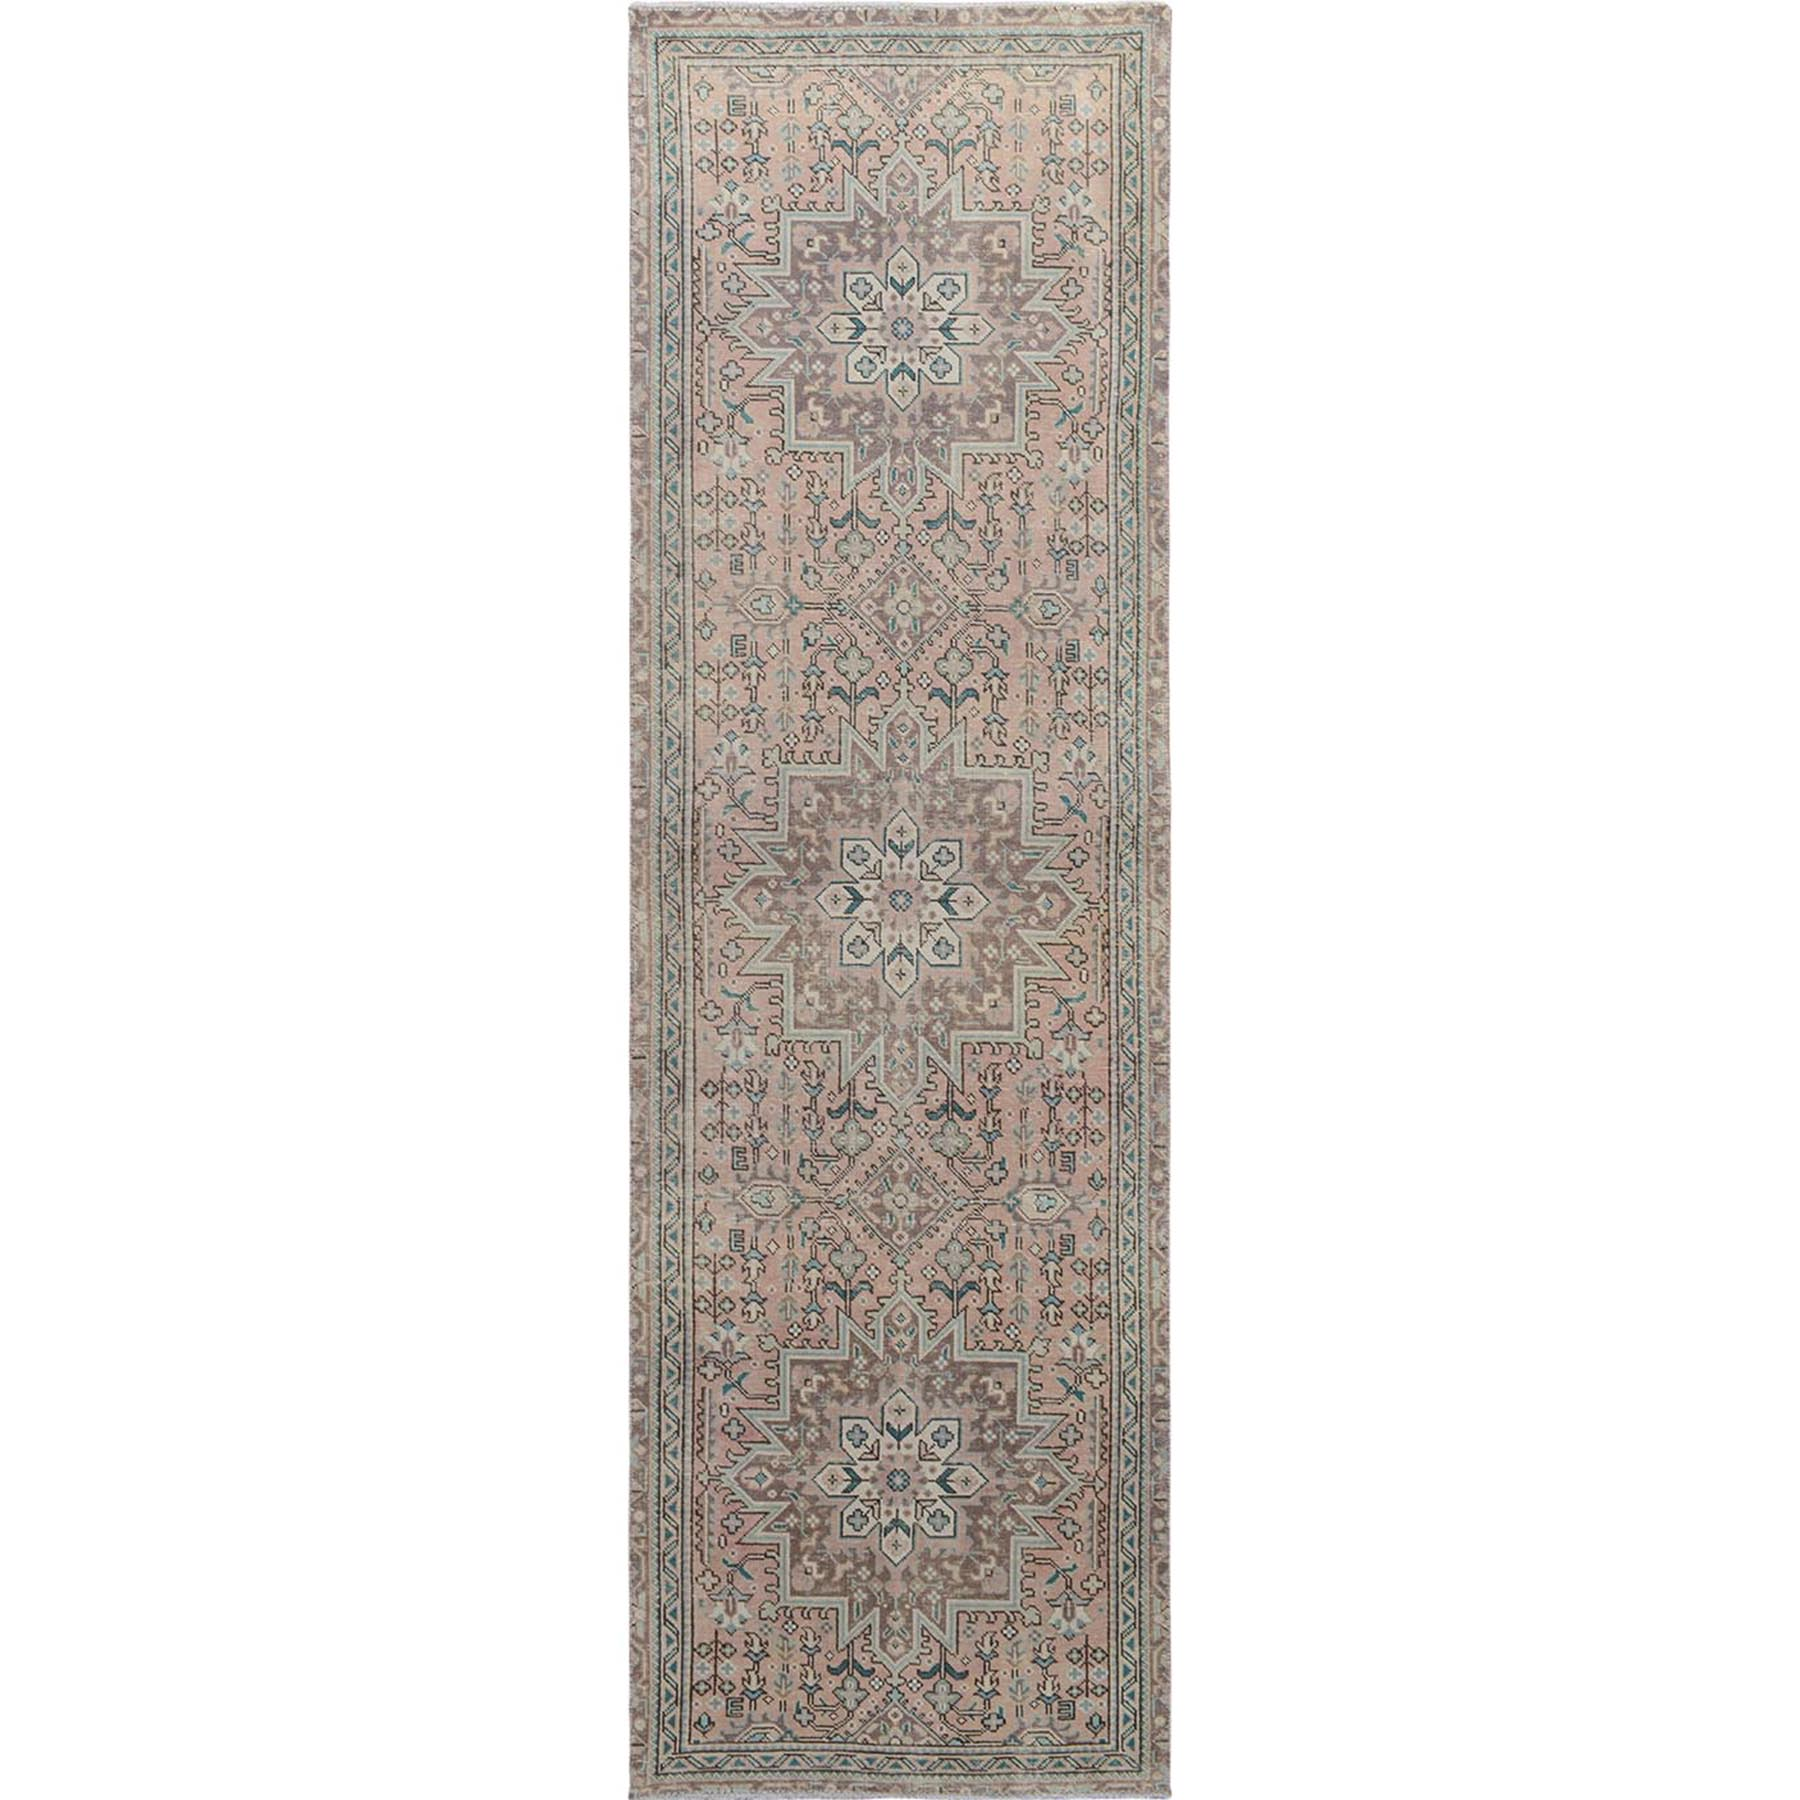 "3'x10'1"" Pink Vintage and Worn Down Persian Heriz Runner Pure Wool Hand Woven Oriental Rug"